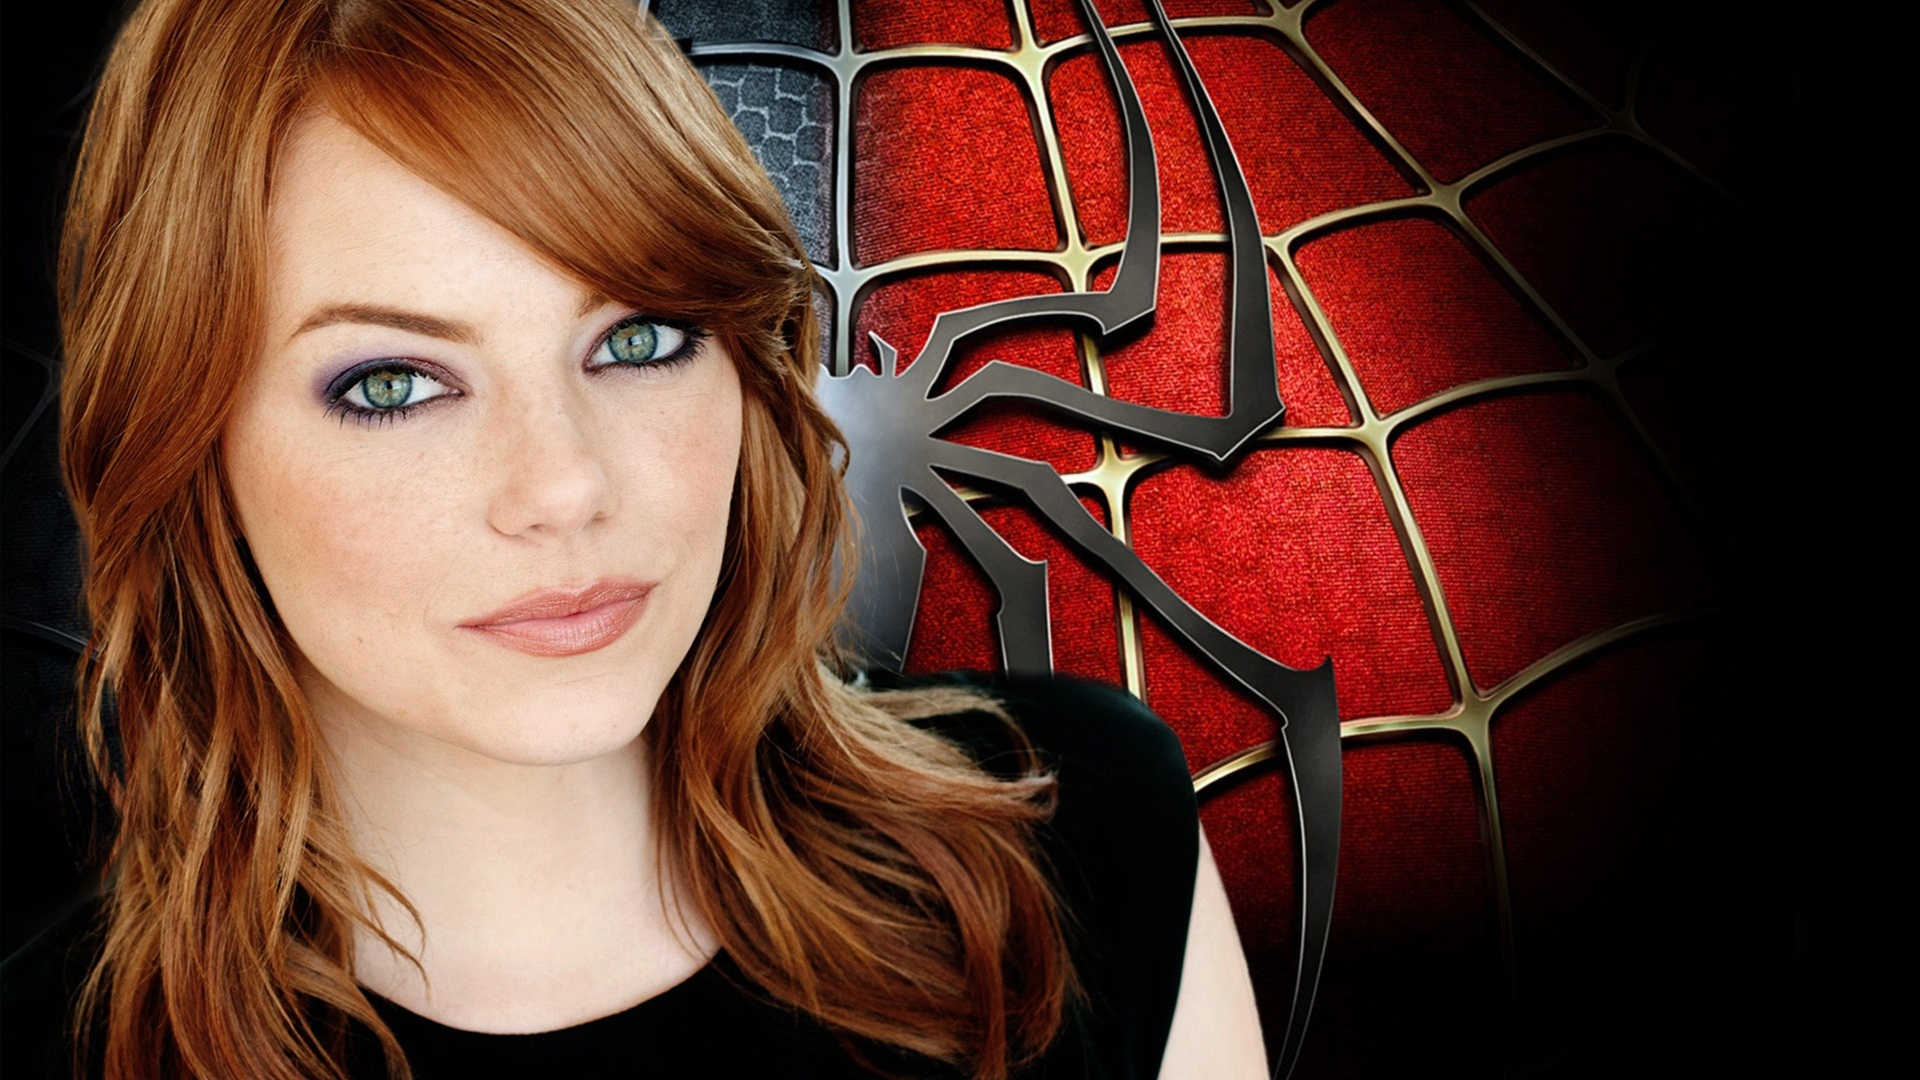 emma stone wallpaper resolution iphone wallpapers 1920x1080 1920x1080